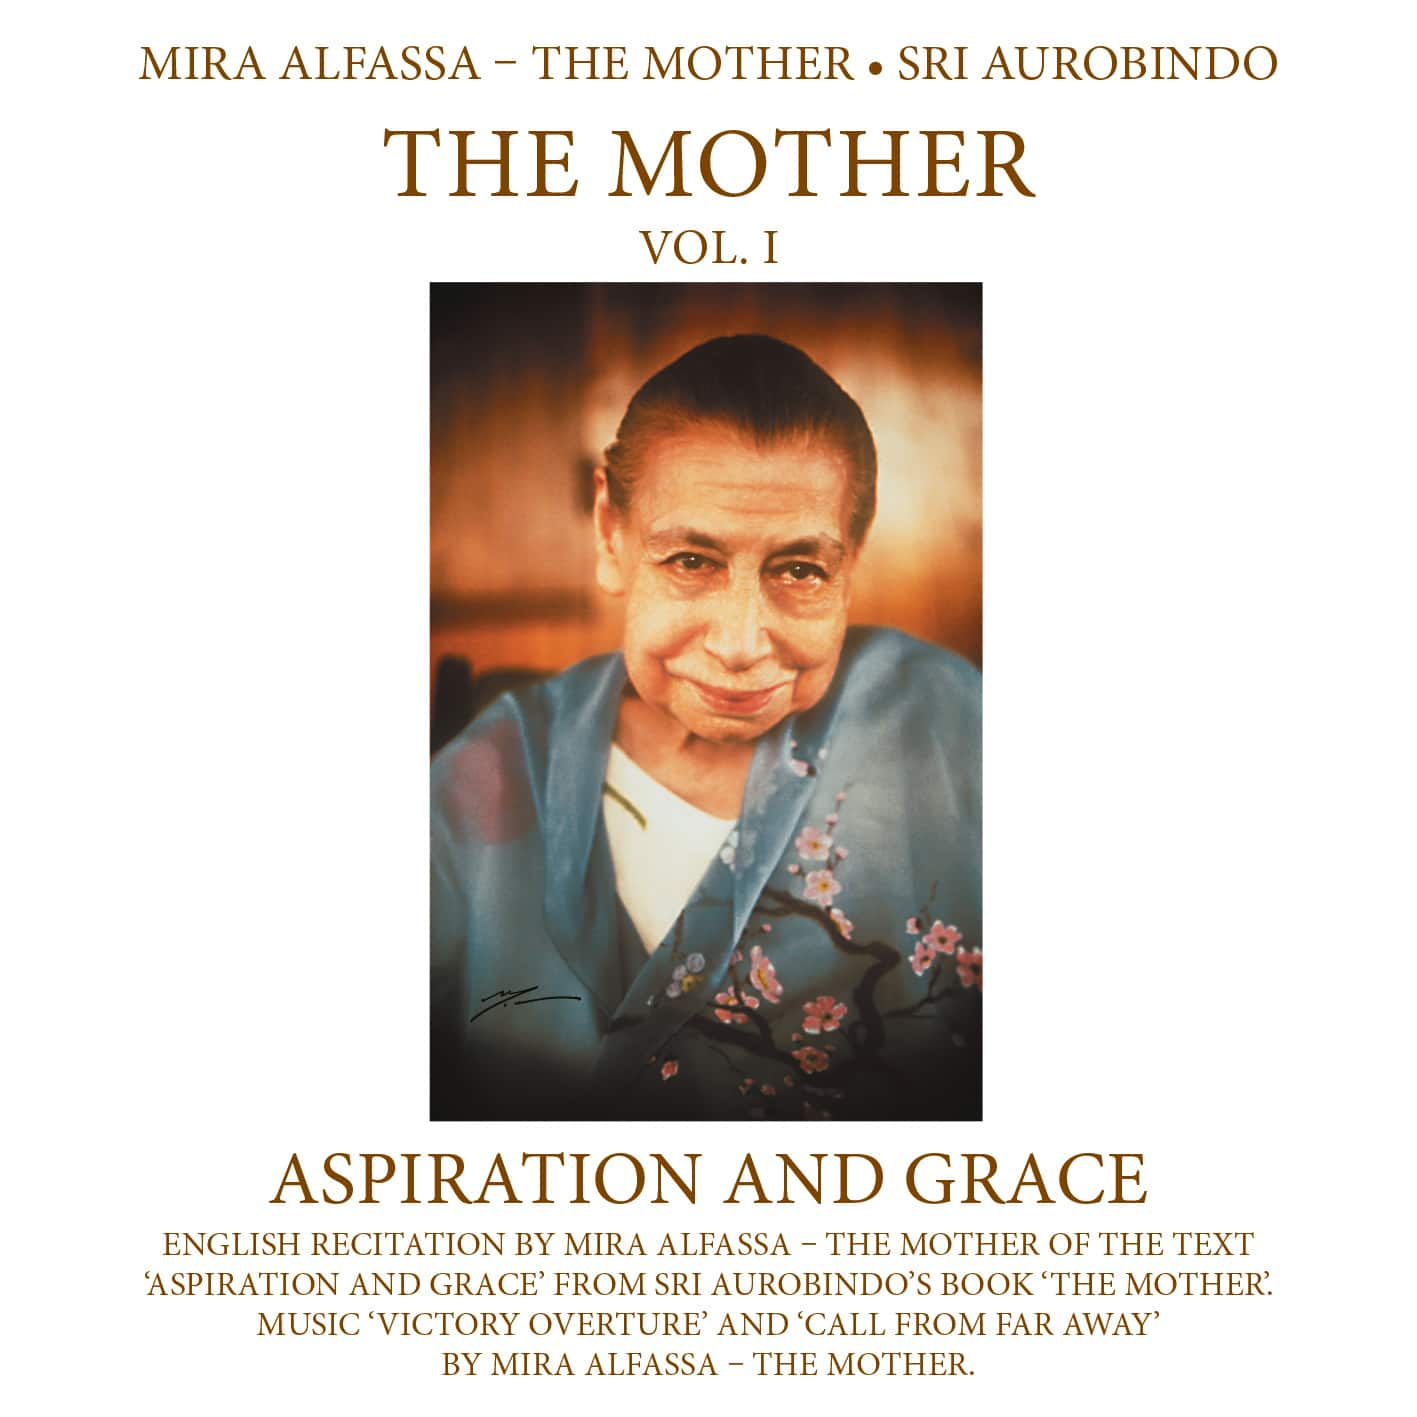 The Mother, Vol 1